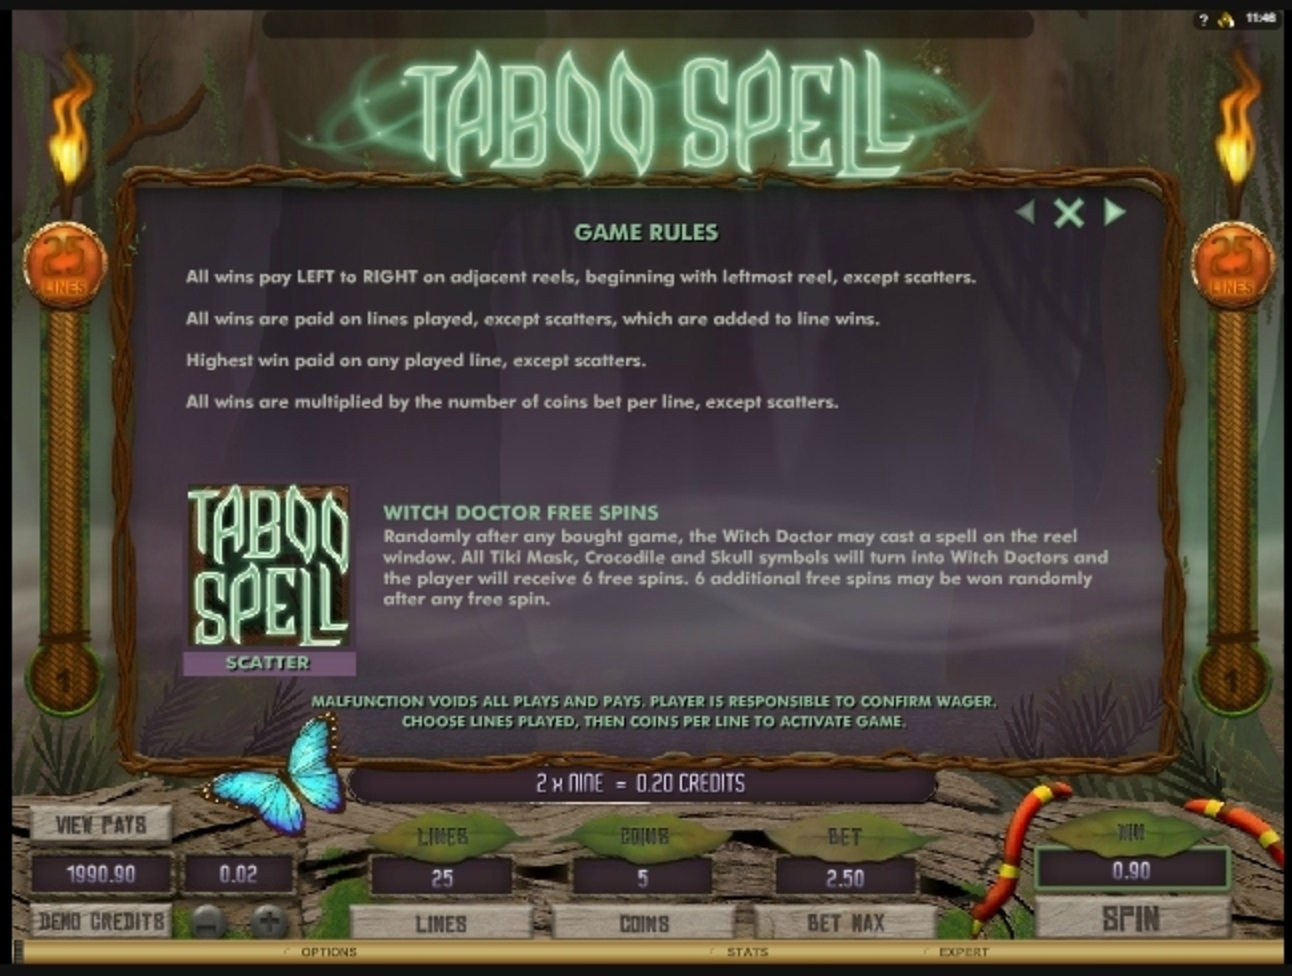 Info of Taboo Spell Slot Game by Microgaming